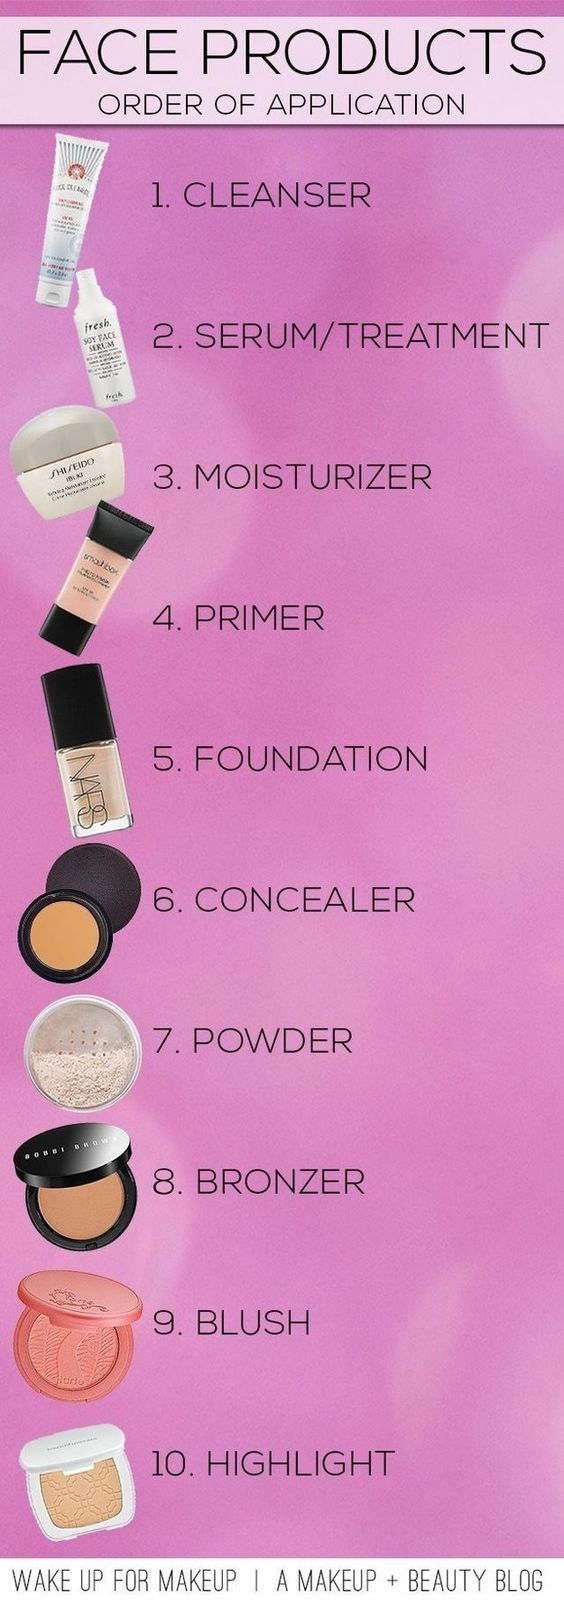 Once you have your skin care routine figured out, time to focus on makeup. | 17 Charts That Will Help You Make Better Decisions When Buying Makeup: